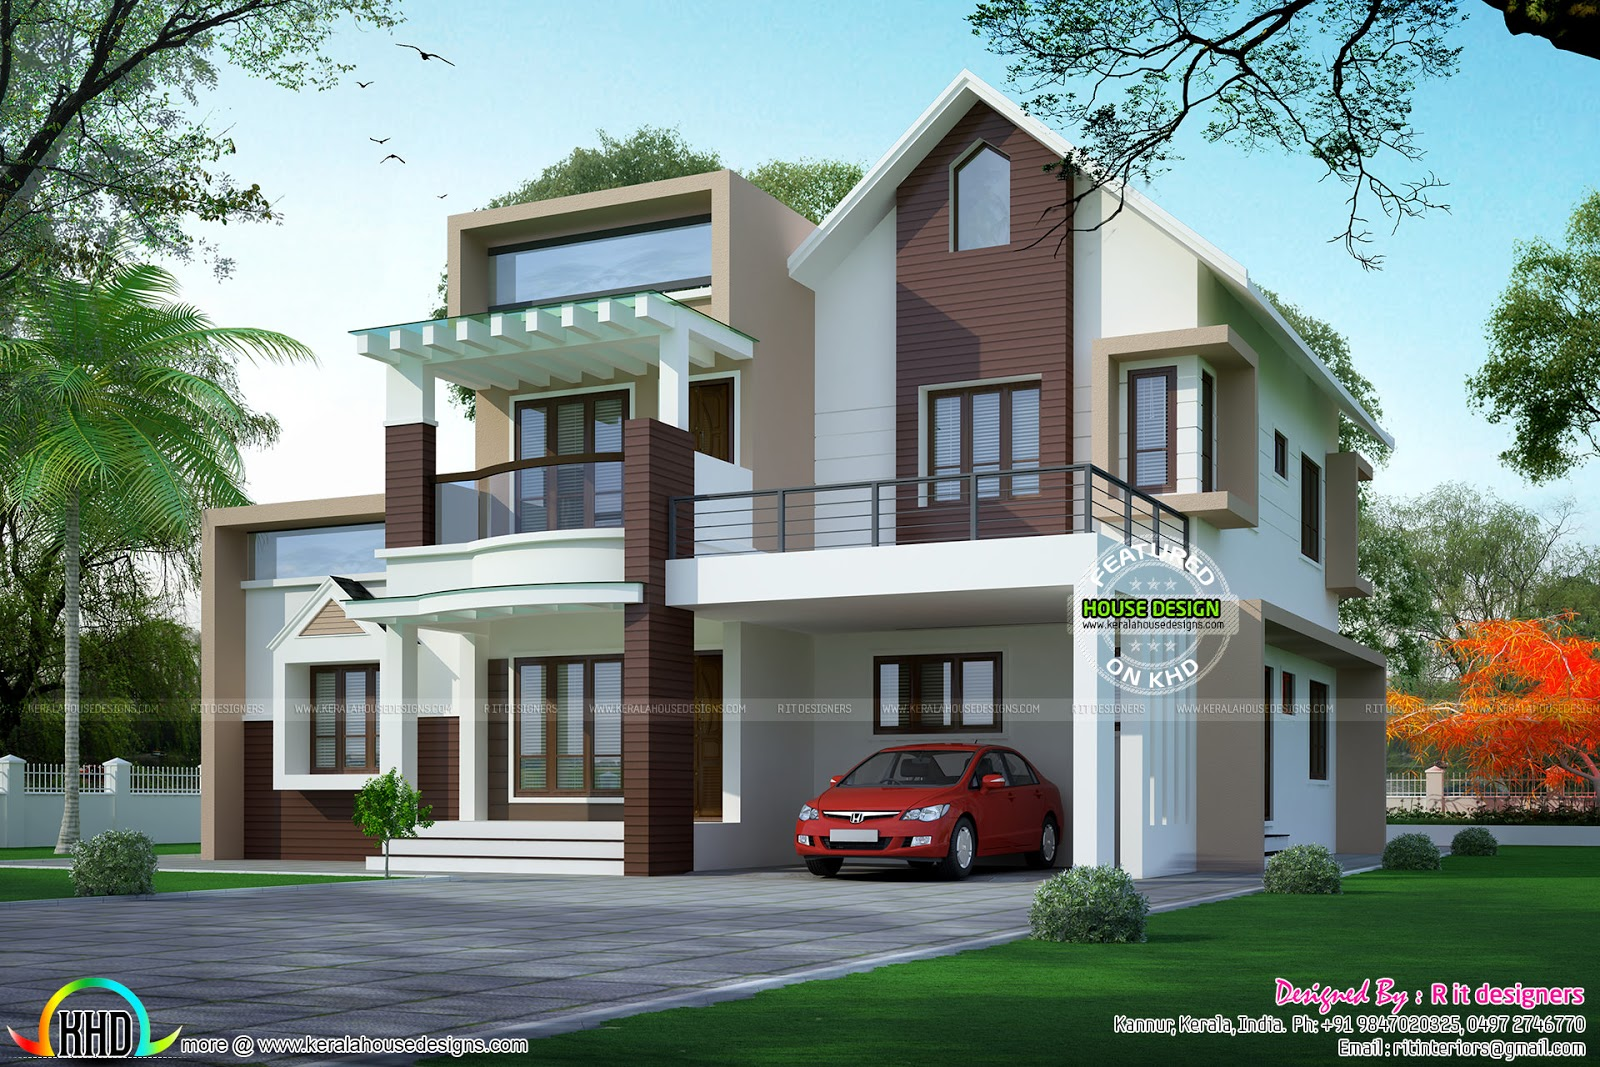 310 sq yd contemporary house mix sloping roof kerala for Modern kerala style house plans with photos